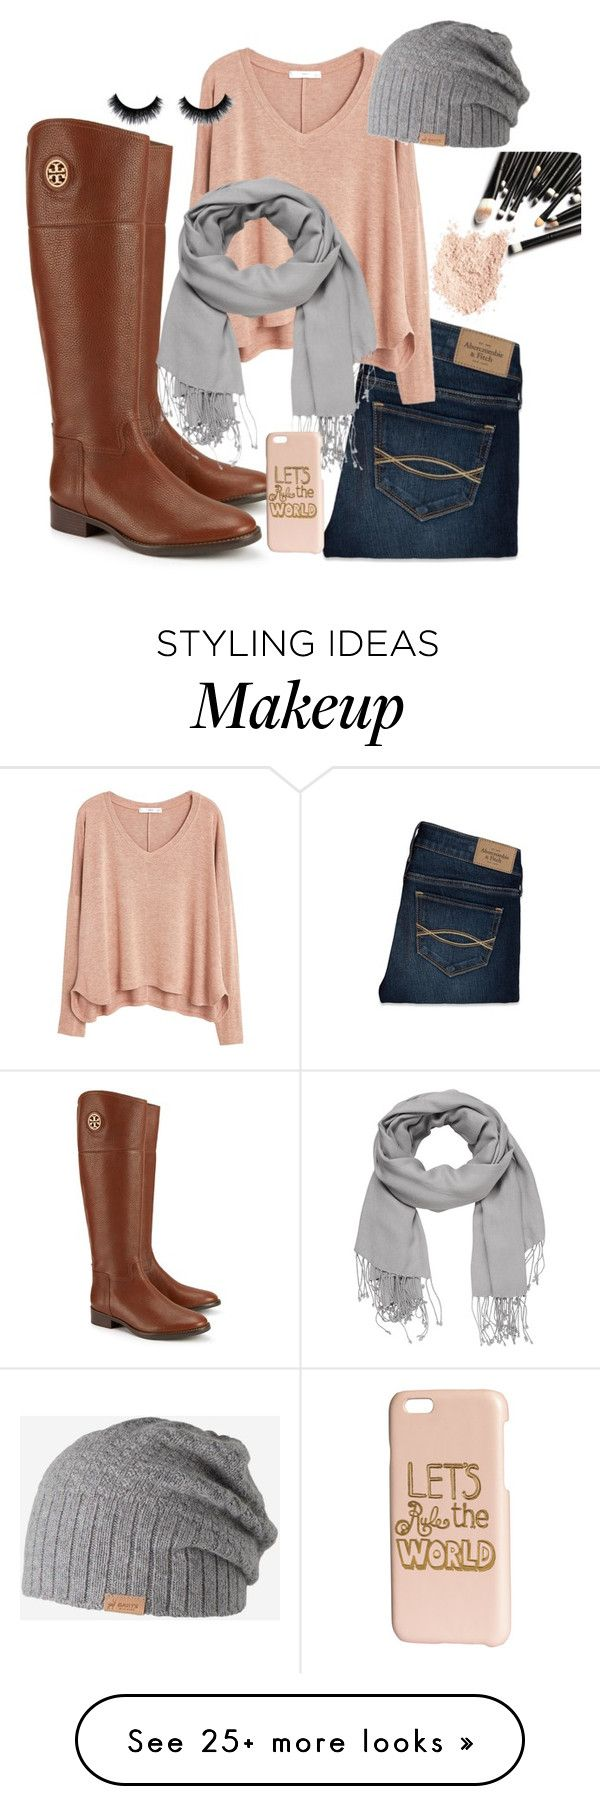 """Untitled #37"" by emilyscott314 on Polyvore featuring Tory Burch, Abercrombie & Fitch, MANGO, maurices, Barts and H&M"